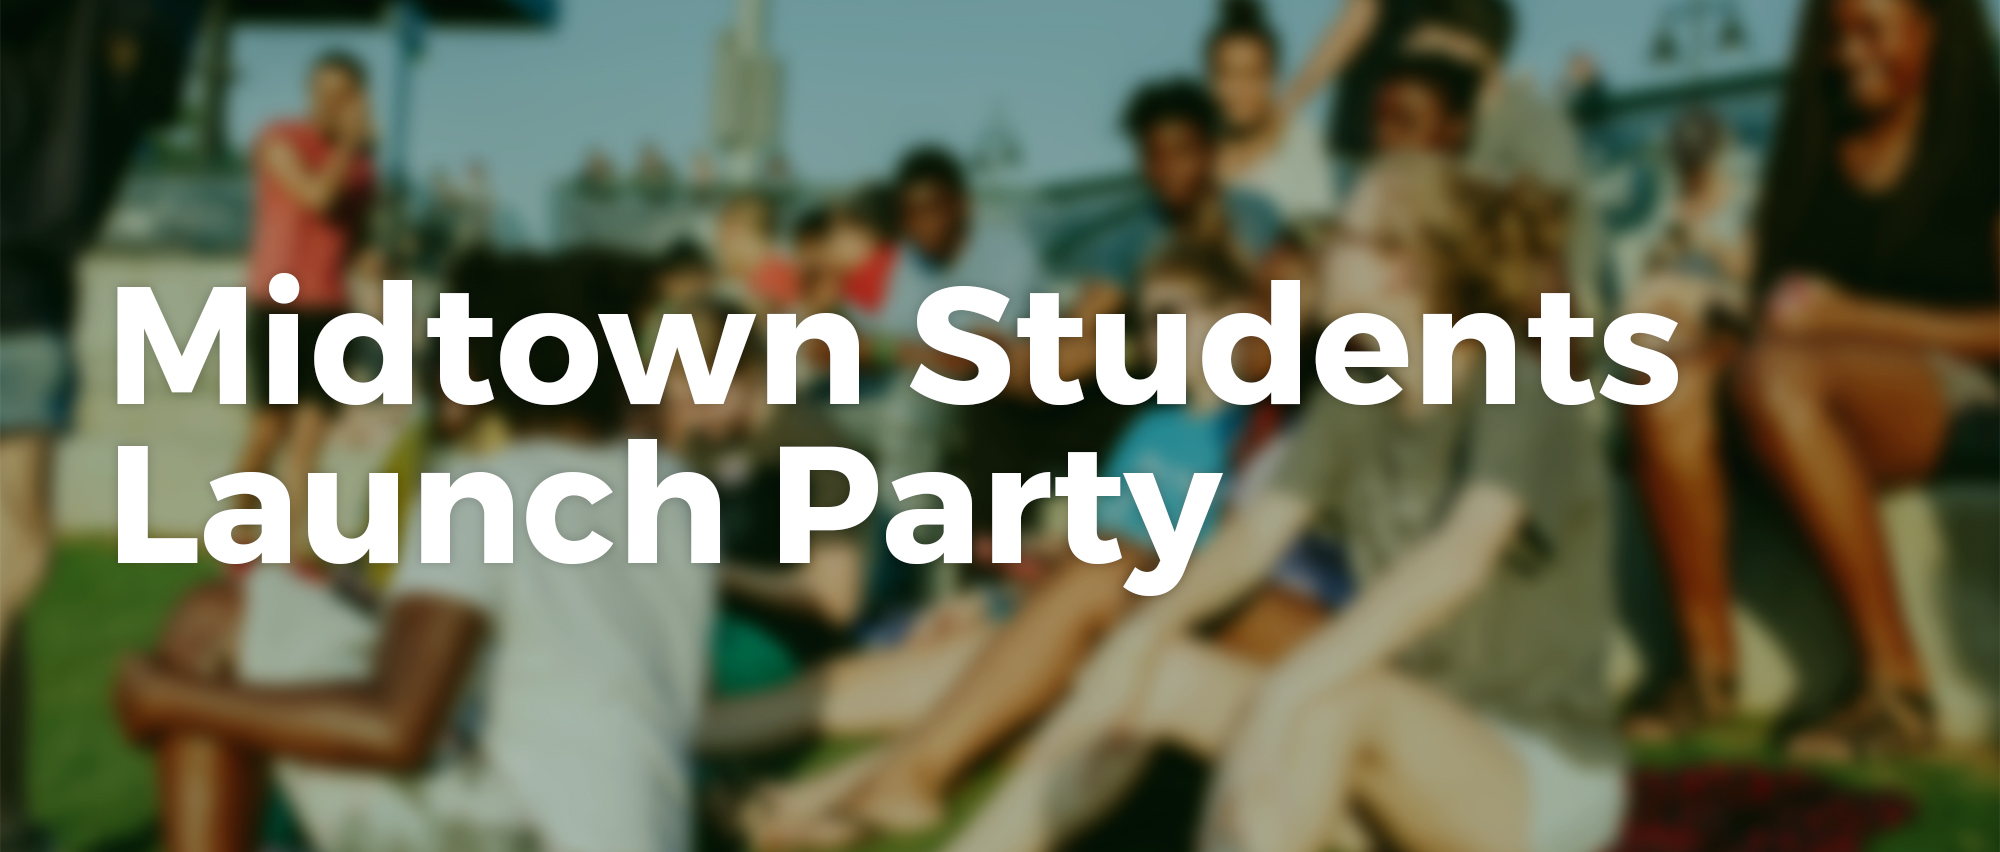 Join us for our Midtown Students Launch Party